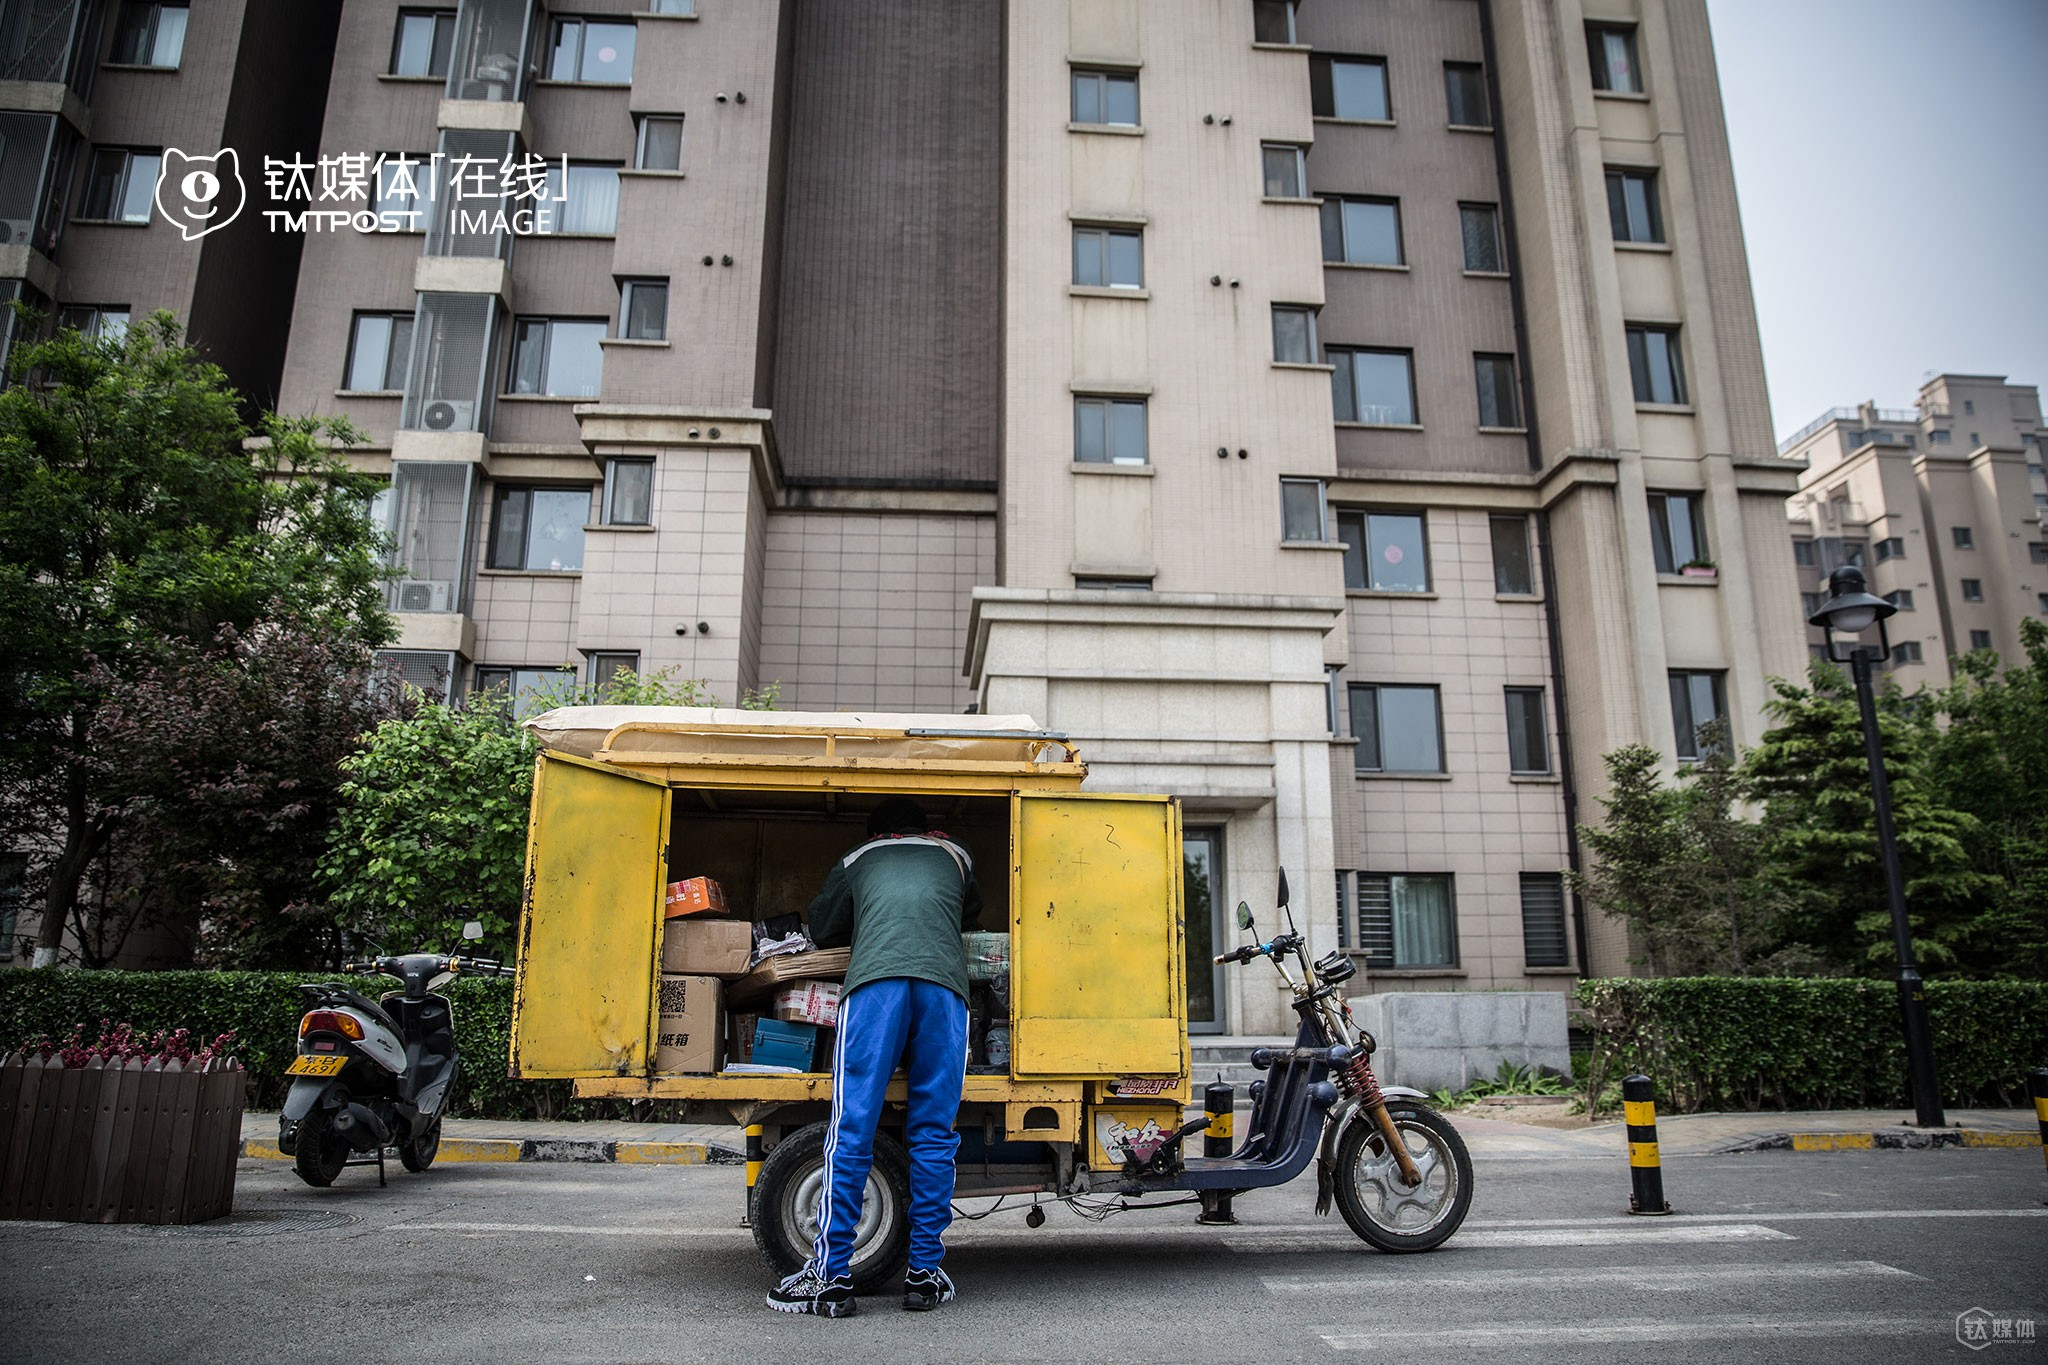 """Deliverymen in large-sized express companies can deliver a few hundred packages per day since they could deliver more packages at one place and deliver packages only in two or three places a day, while they have to spend most time travelling from one residential area to another,"" Lufei explained."